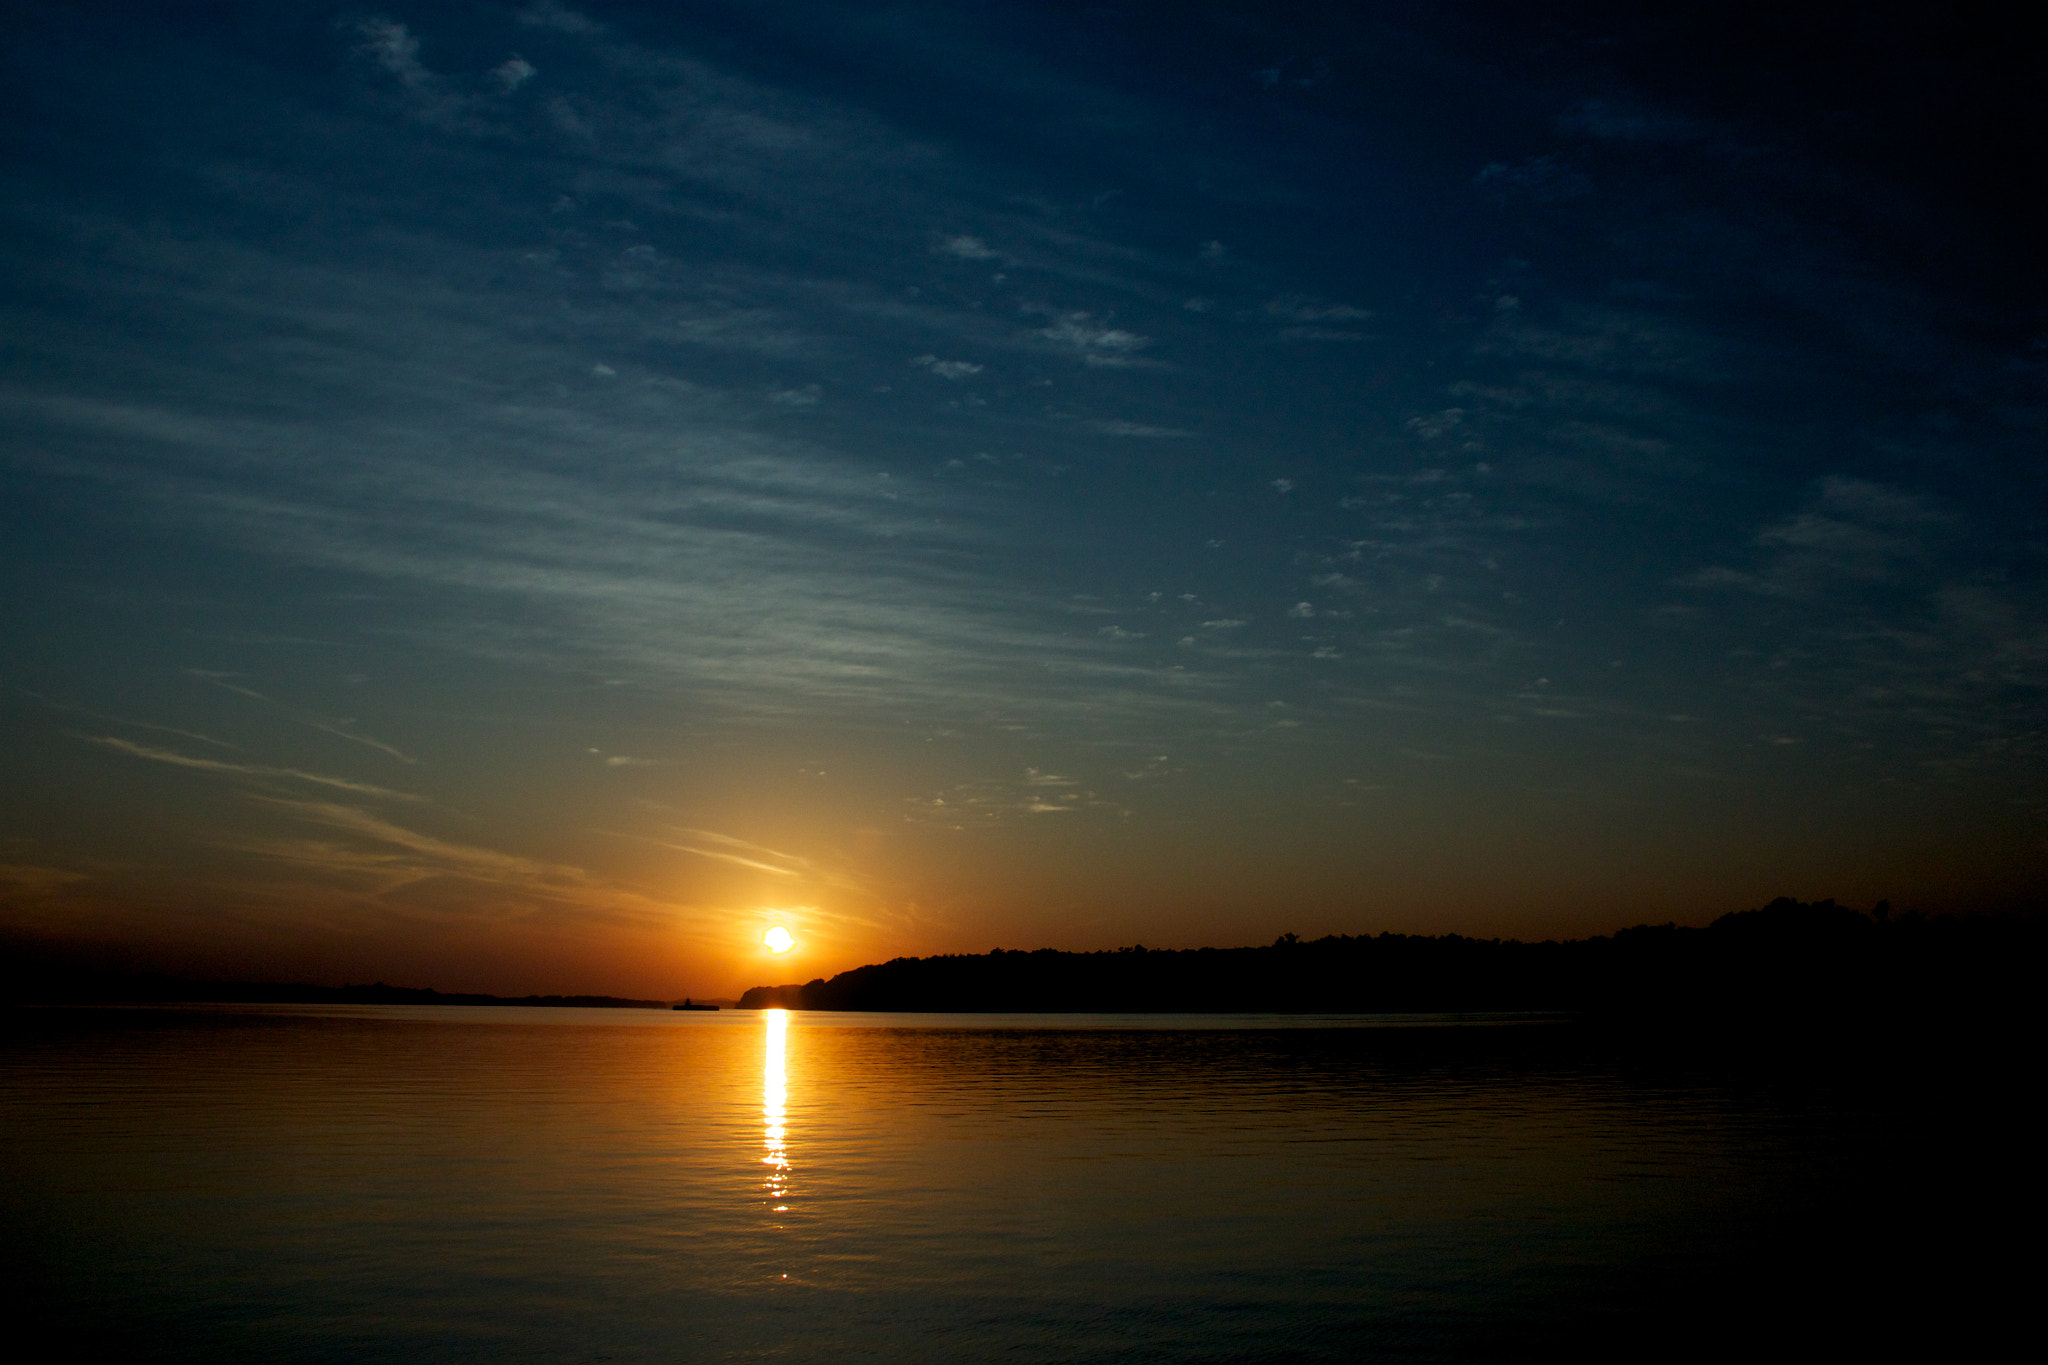 Photograph Ohio River Sunset by Chris Taylor on 500px